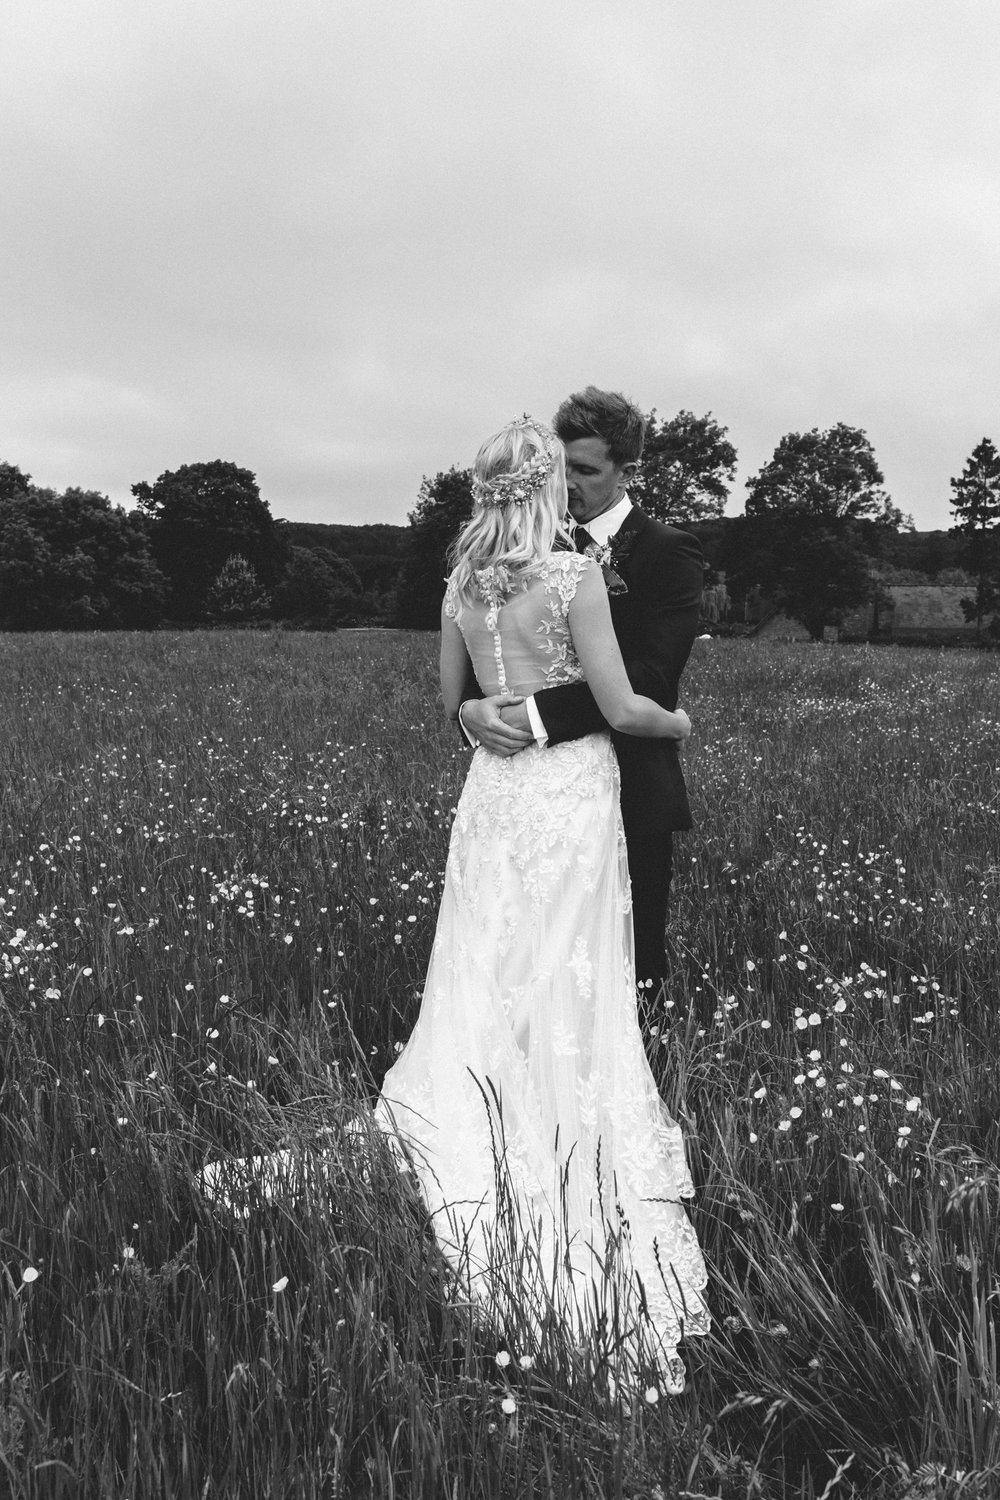 bride and groom Birmingham photographer wedding country artistic wedding photography31.jpg